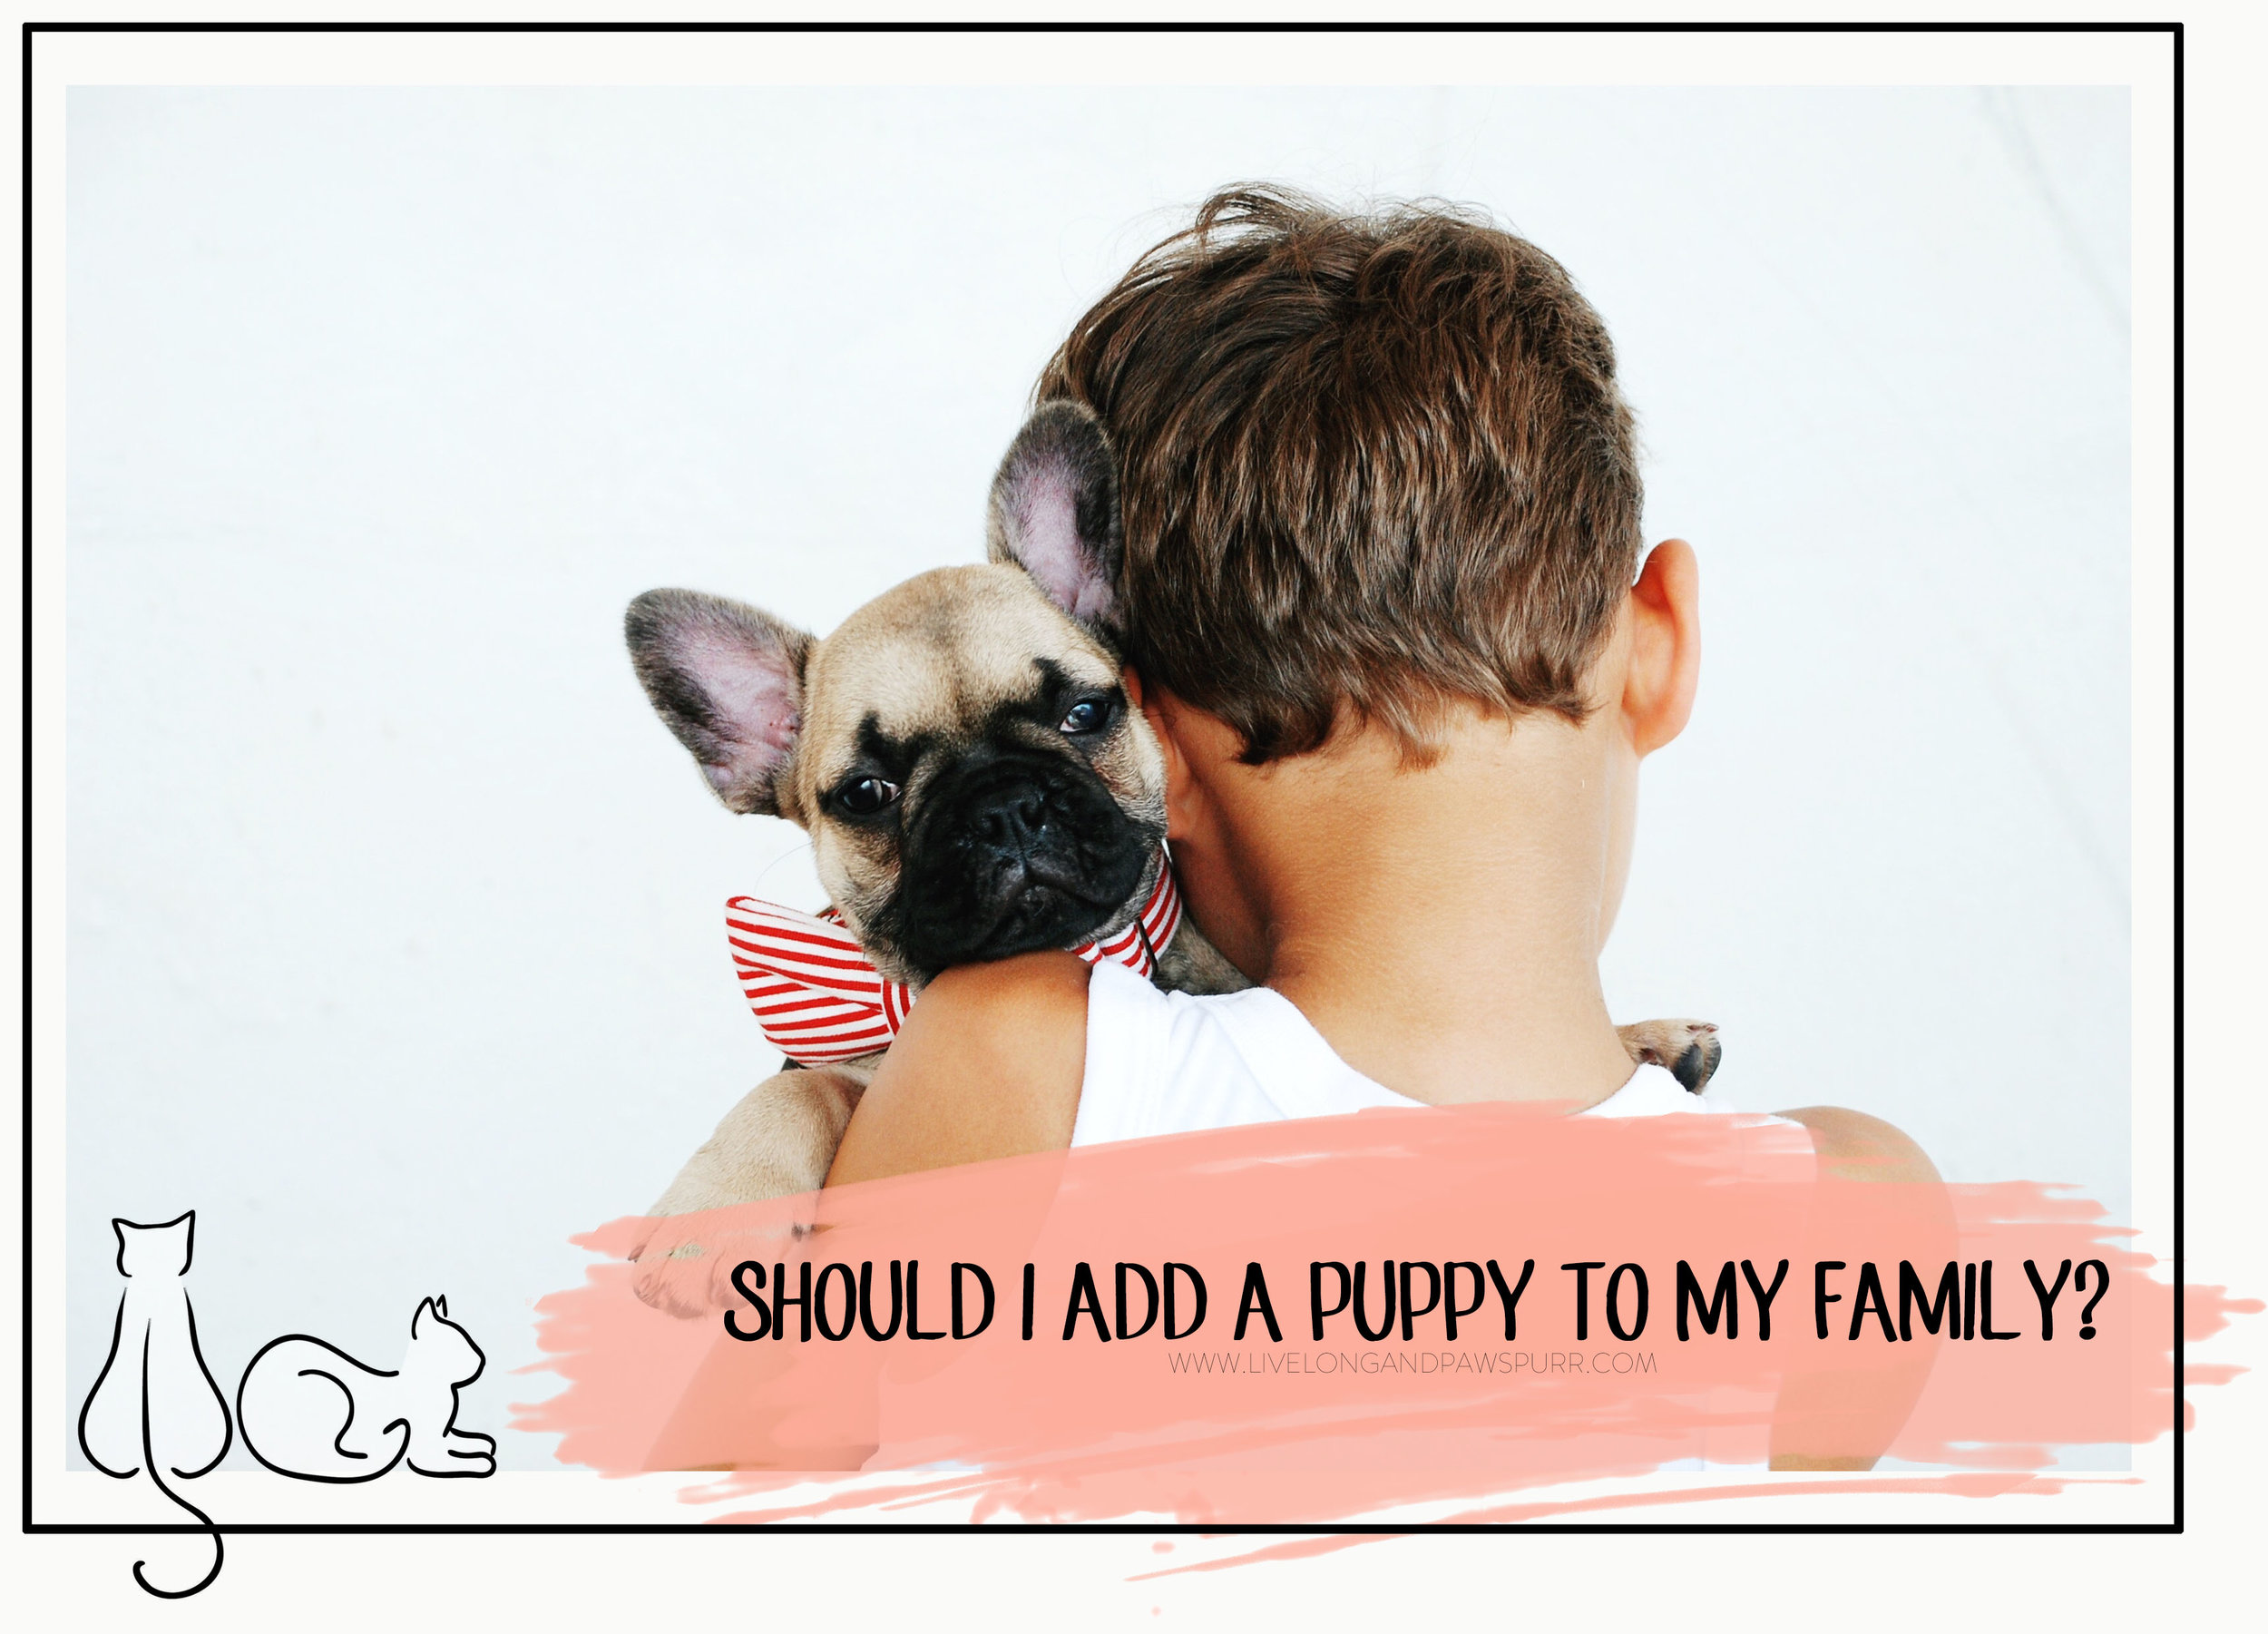 adding a puppy to the family #puppyadoption #puppy